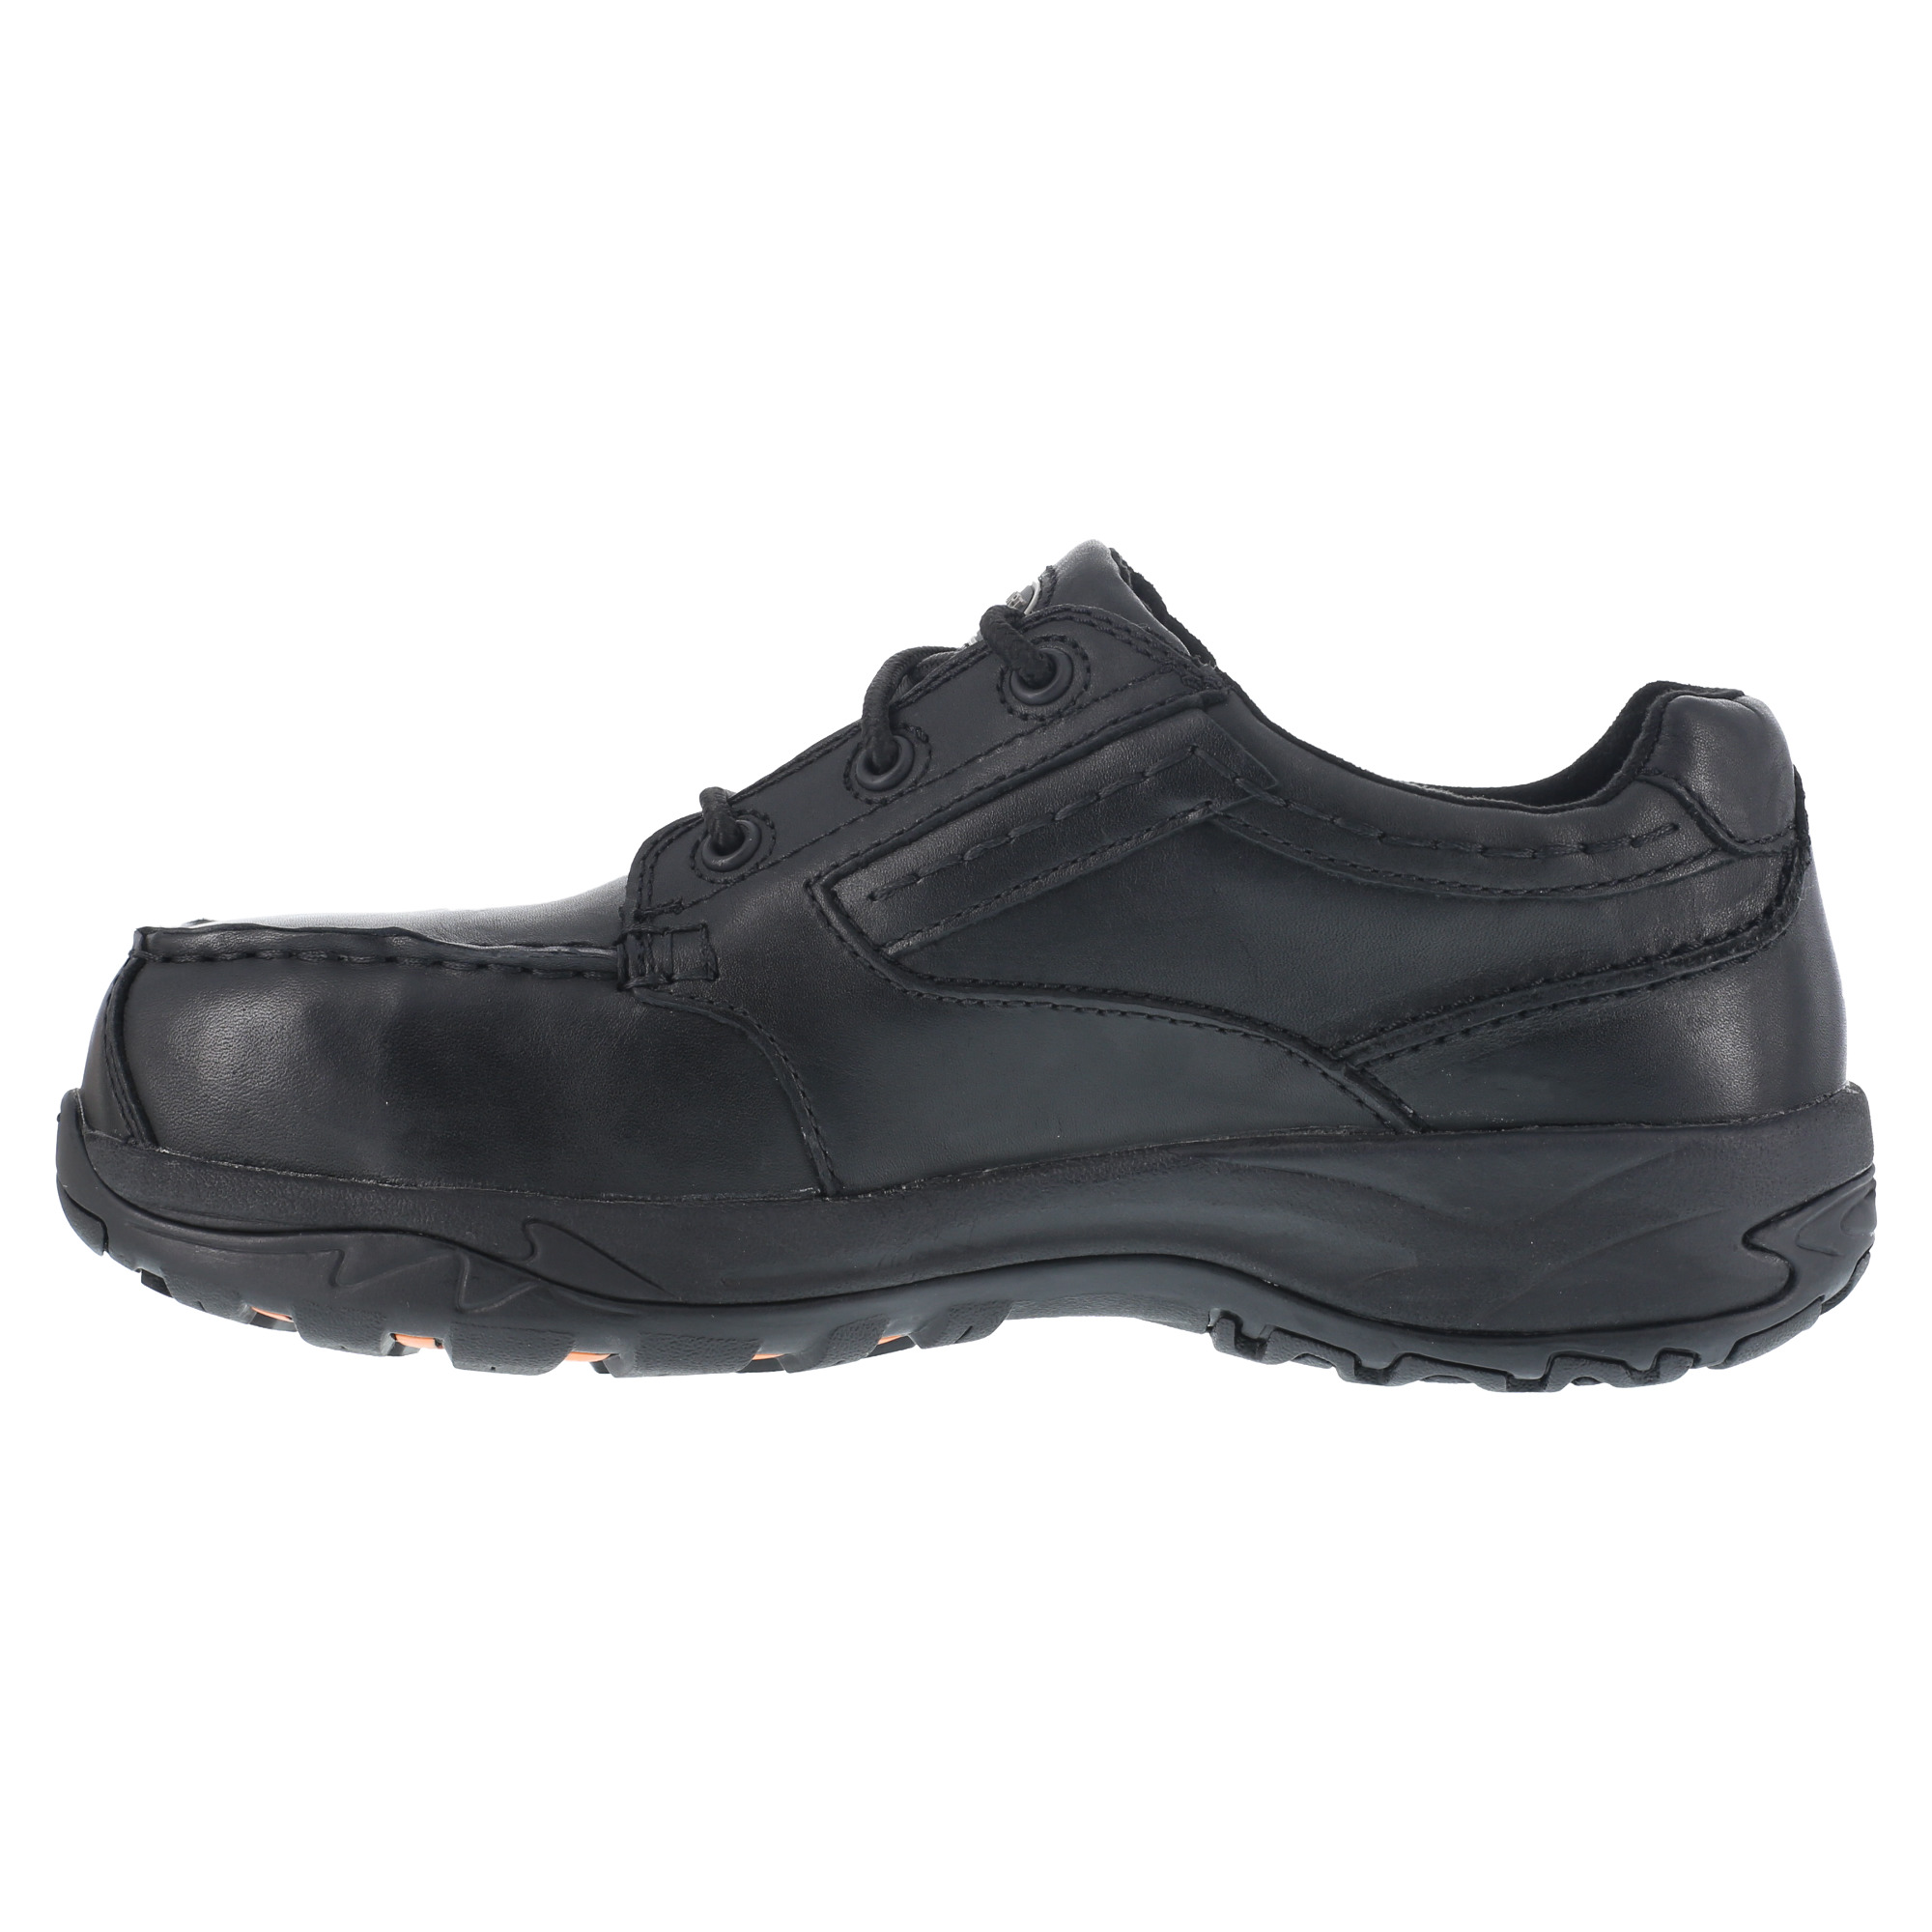 west rockport black singles Mens rockport solid faux leather lace up oxfords available @ boscov's online rockport mudguard oxfords offer a flat heel with premium leather uppers with stitch detailing and a round toe and stability control insoles.